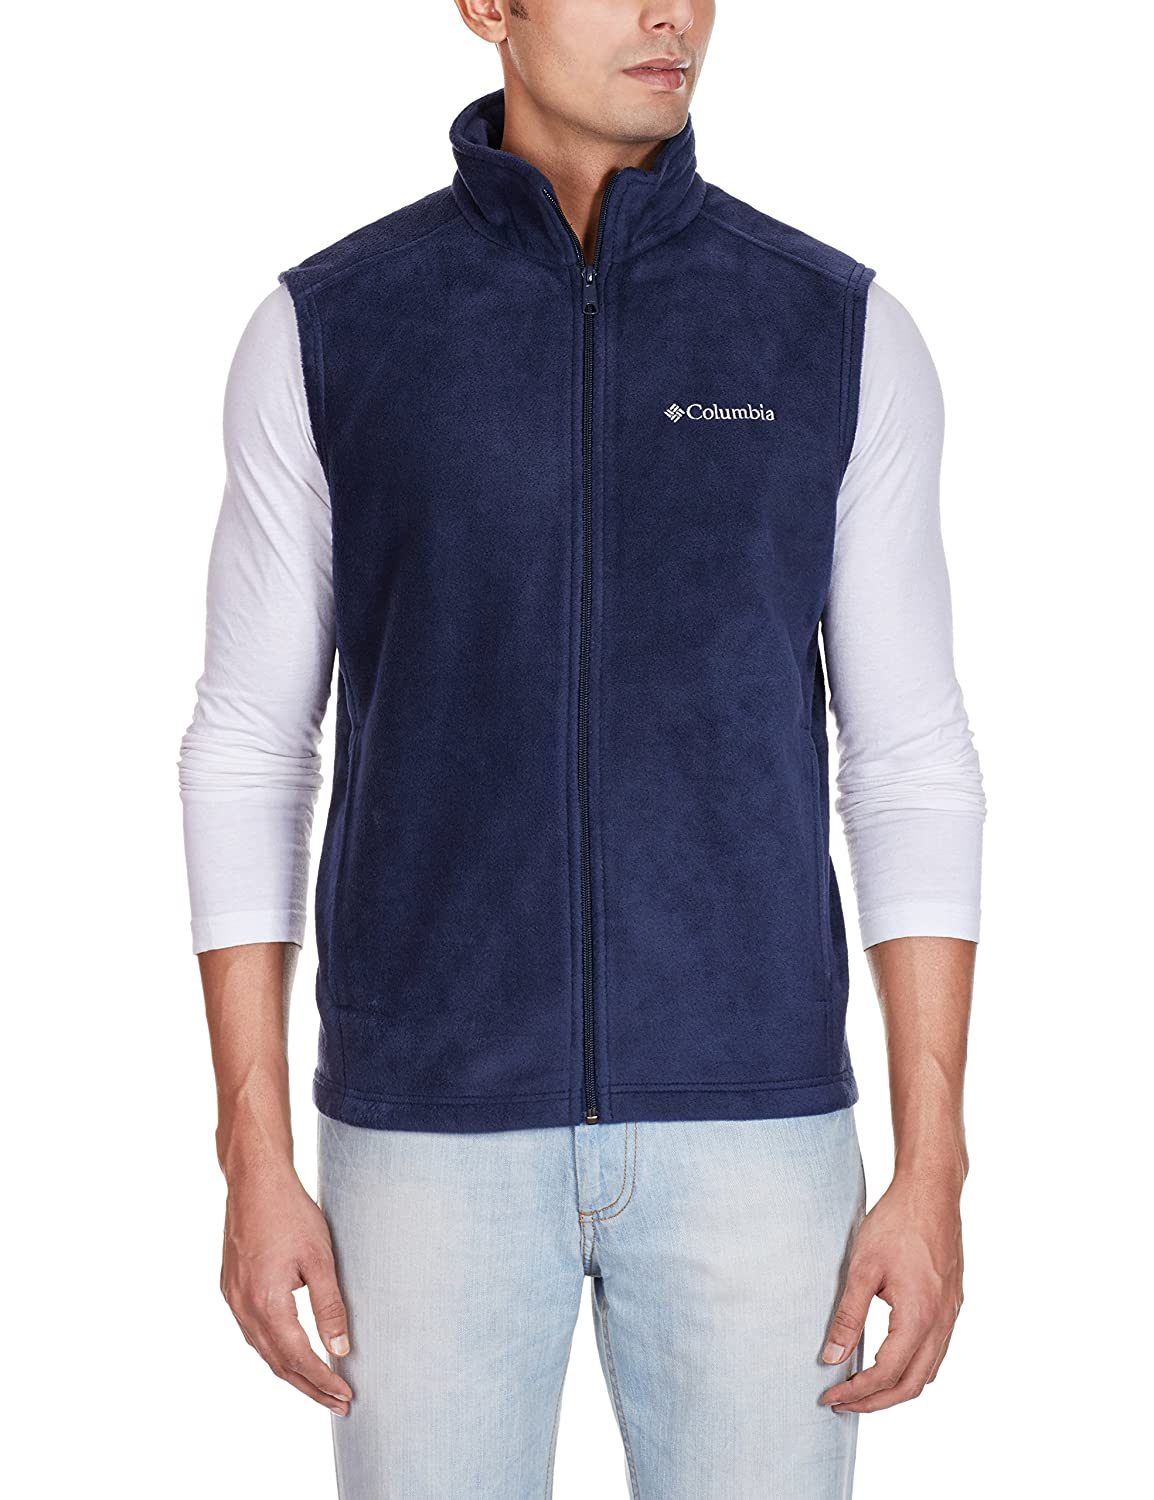 Columbia mens Cathedral Peak Front-zip Fleece Vest Columbia Men's Outerwear 1519151